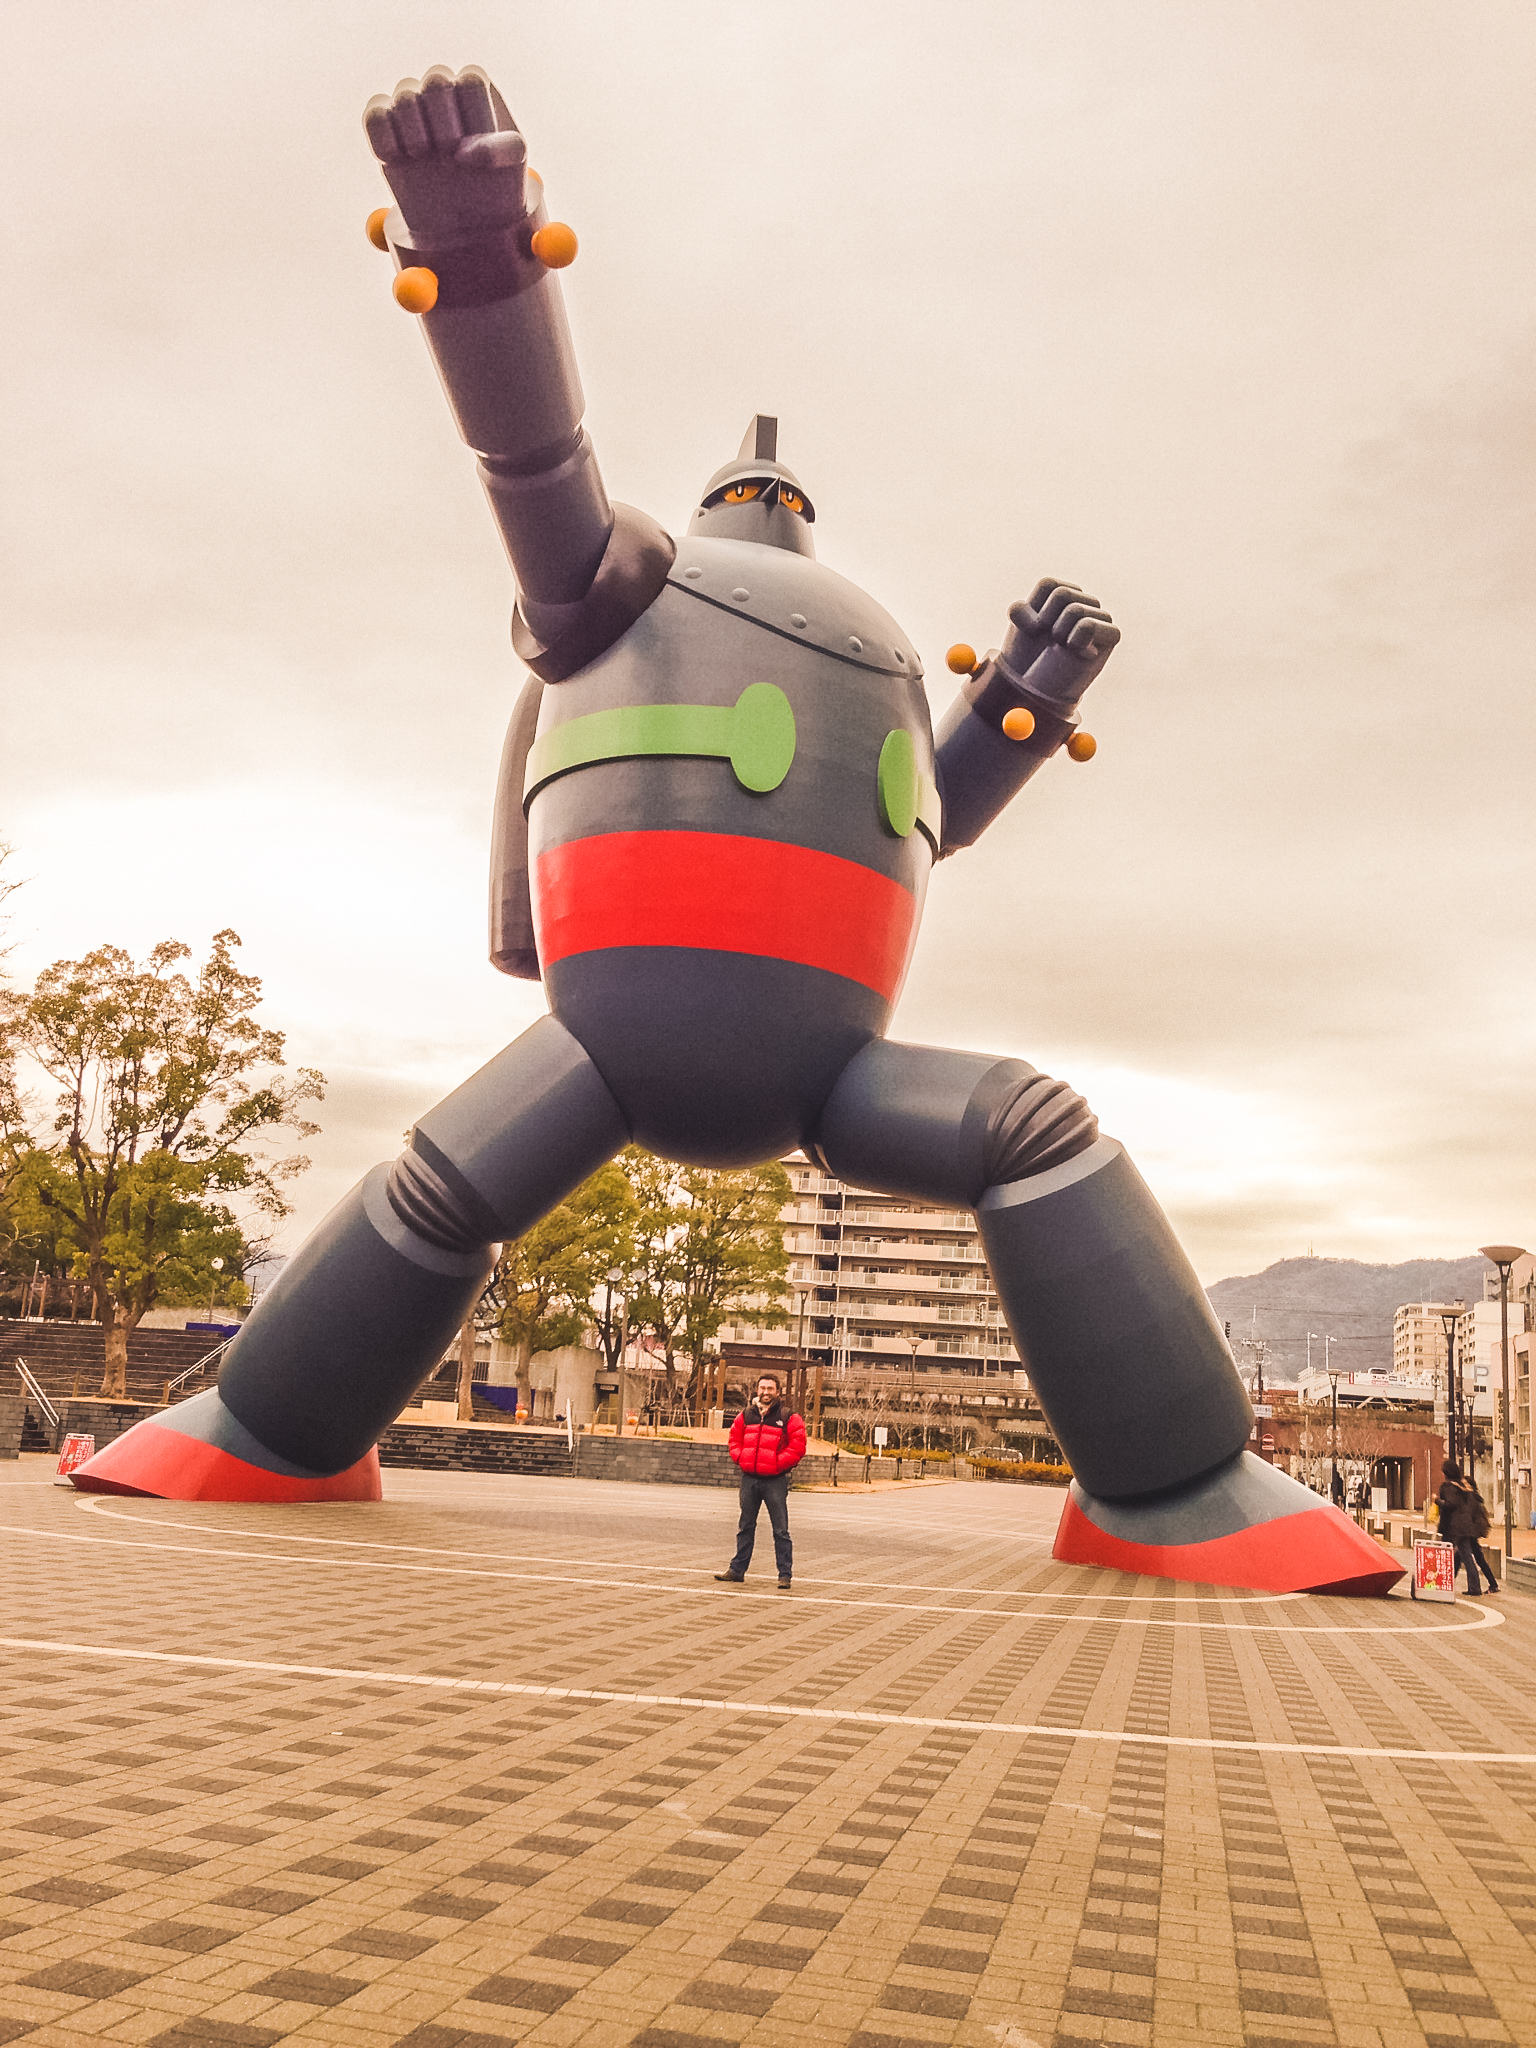 Me standing underneath a monstrous 20 meter tall (59') to-scale statue of Tetsujin 28, next to Kobe's Shin-Nagata station.